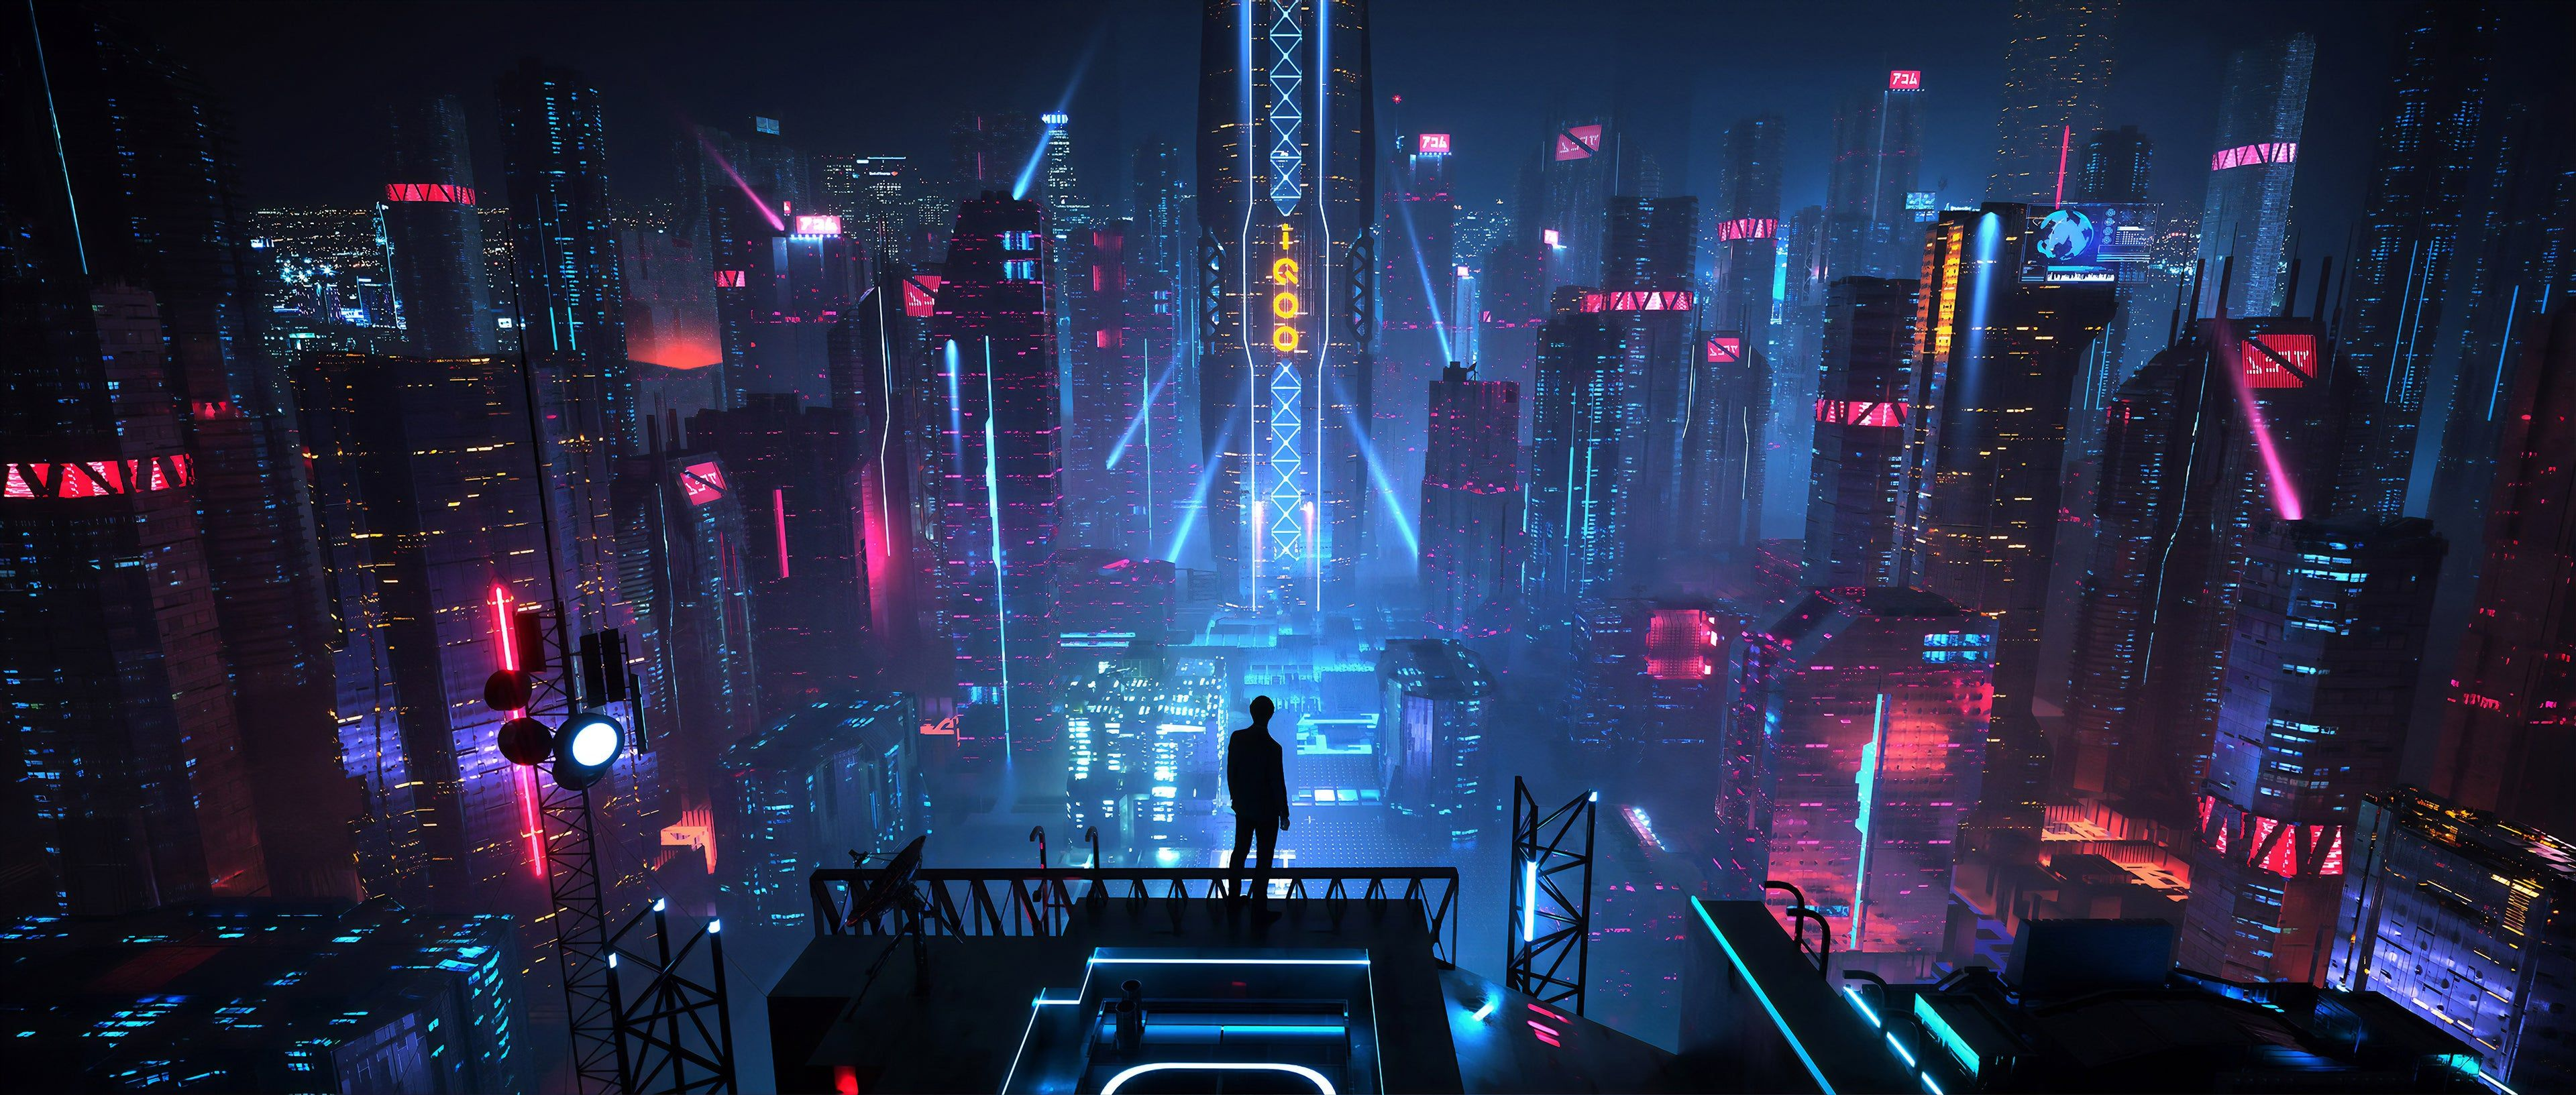 Cyberpunk City 4k Wallpaper Cyberpunk City City Wallpaper Futuristic City